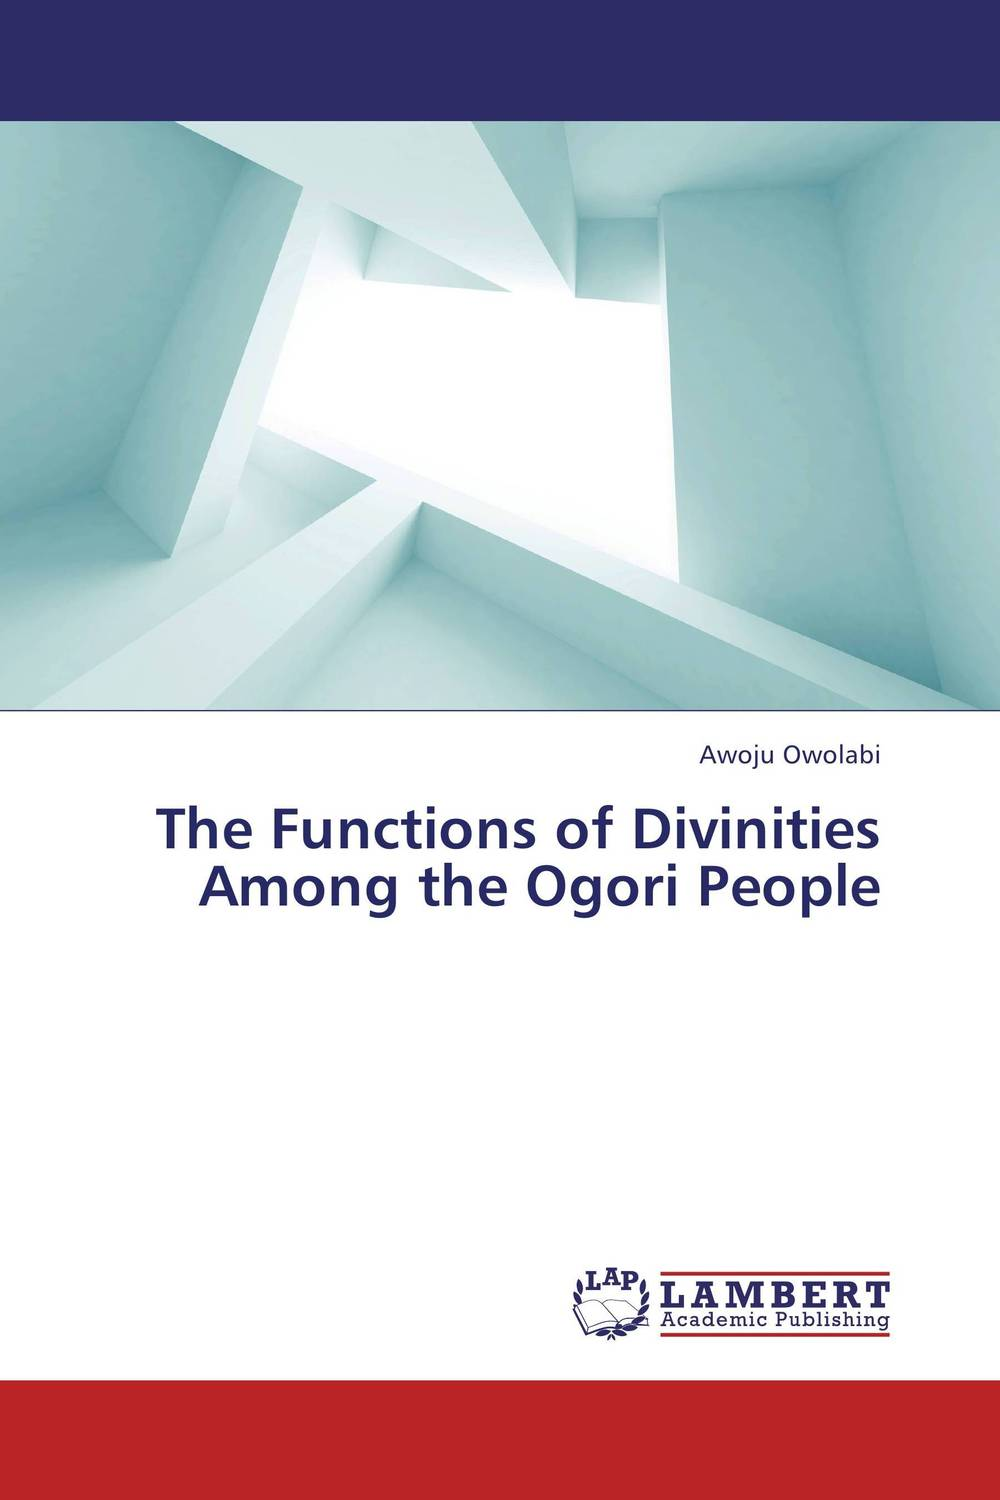 The Functions of Divinities Among the Ogori People